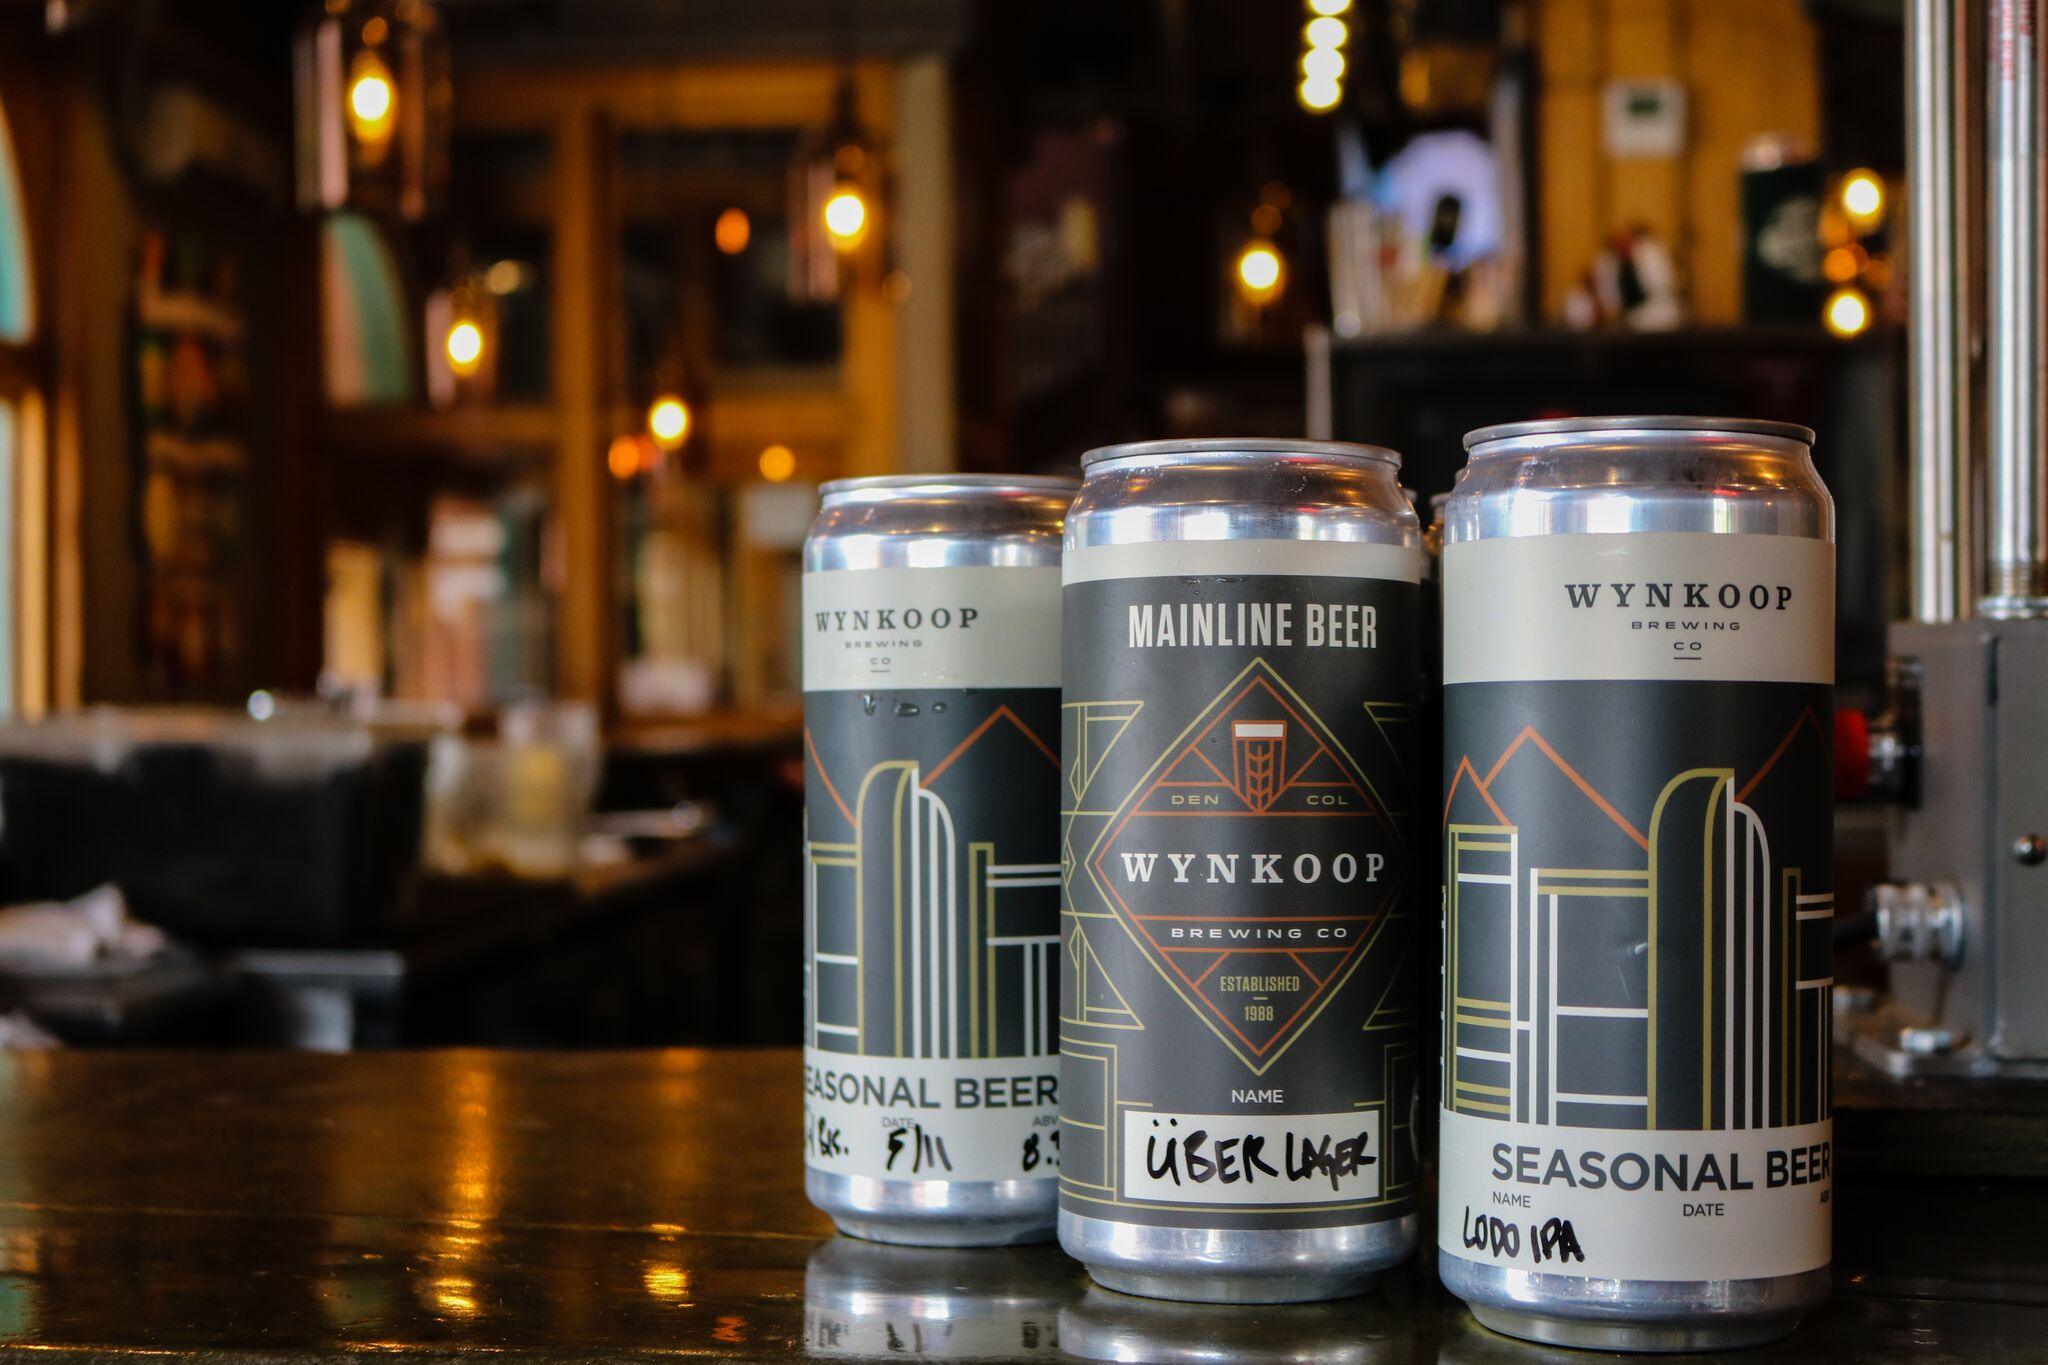 Wynkoop Brewing Company Now Offers 32 Ounce Cans